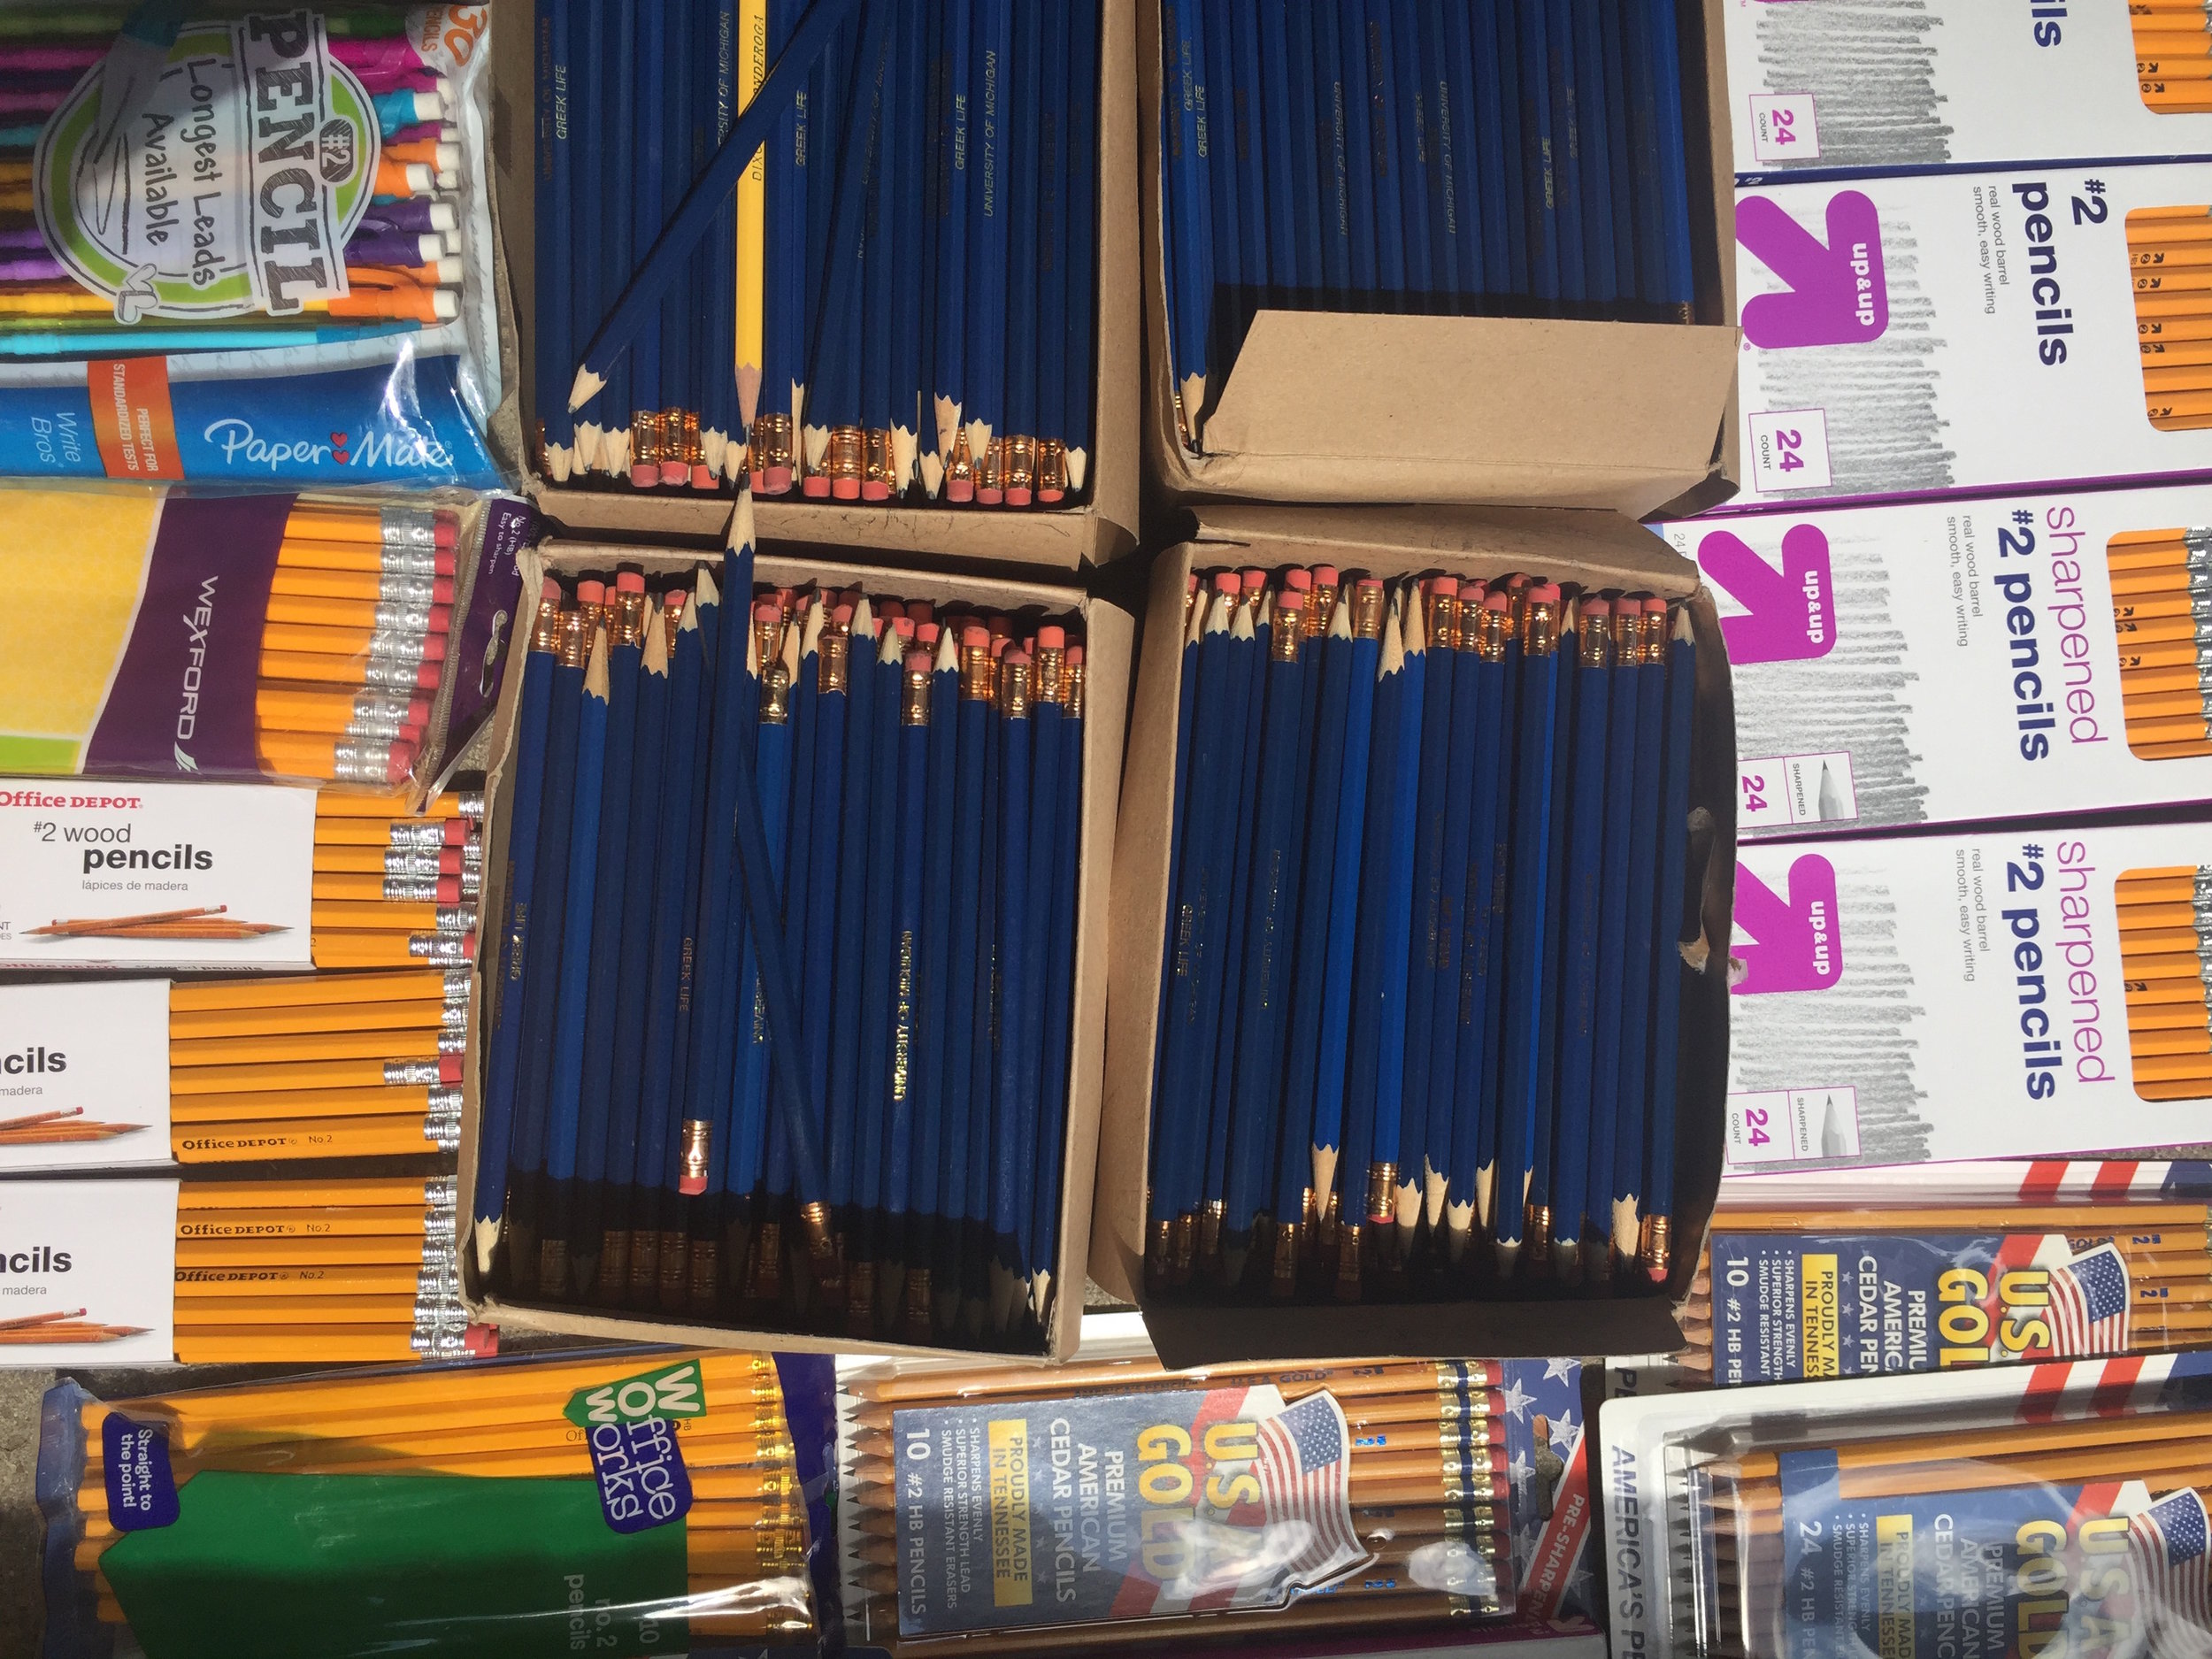 84 Packs of Pencils - Donated by generous individuals at UM and Scarlett Middle School